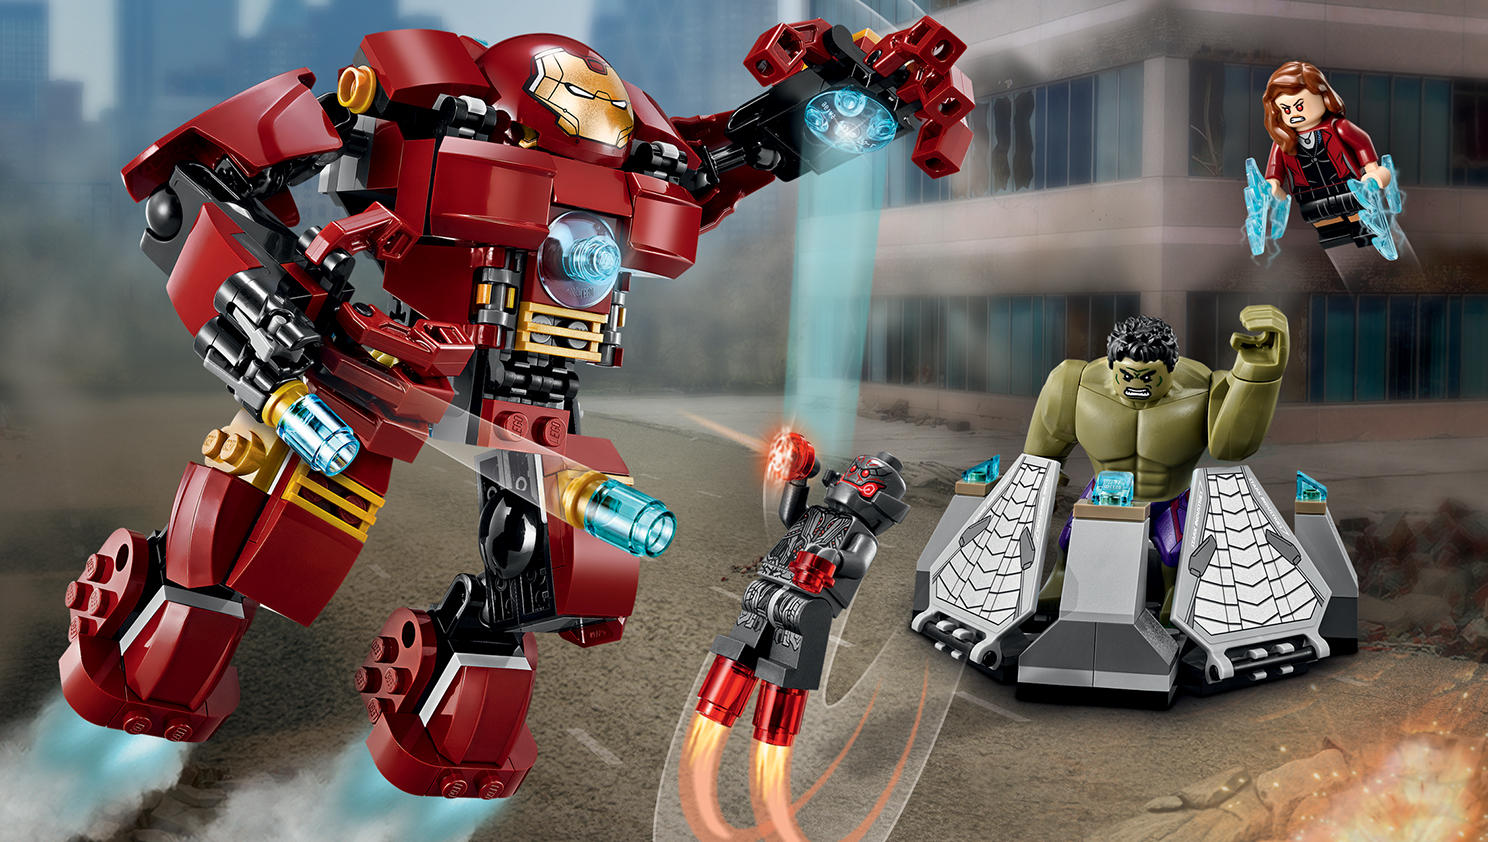 $25.99 LEGO Superheroes The Hulk Buster Smash